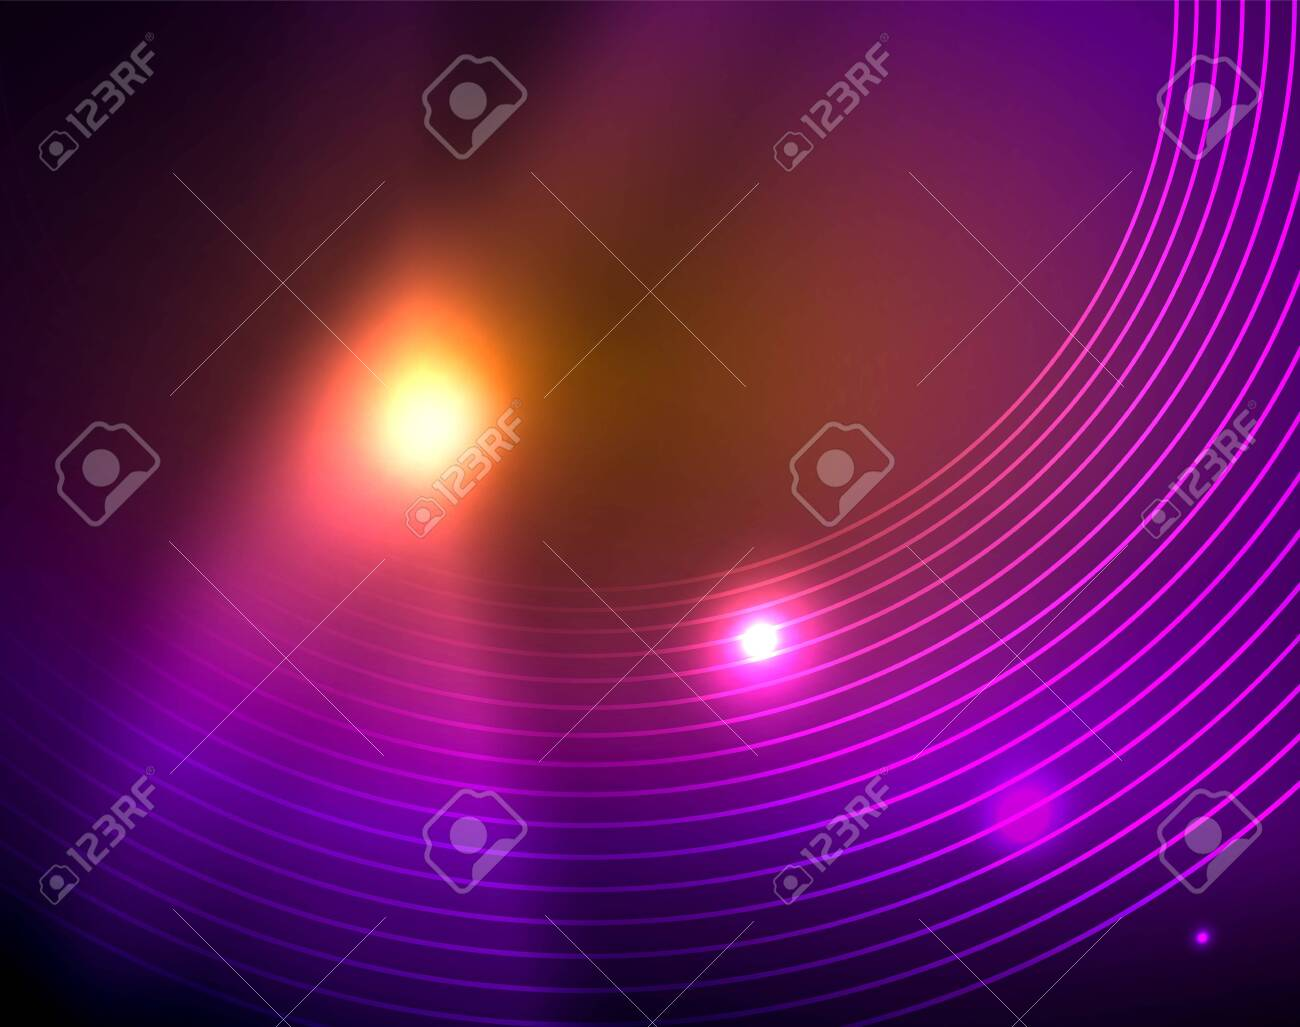 Neon circles abstract background, vector template - 126672274